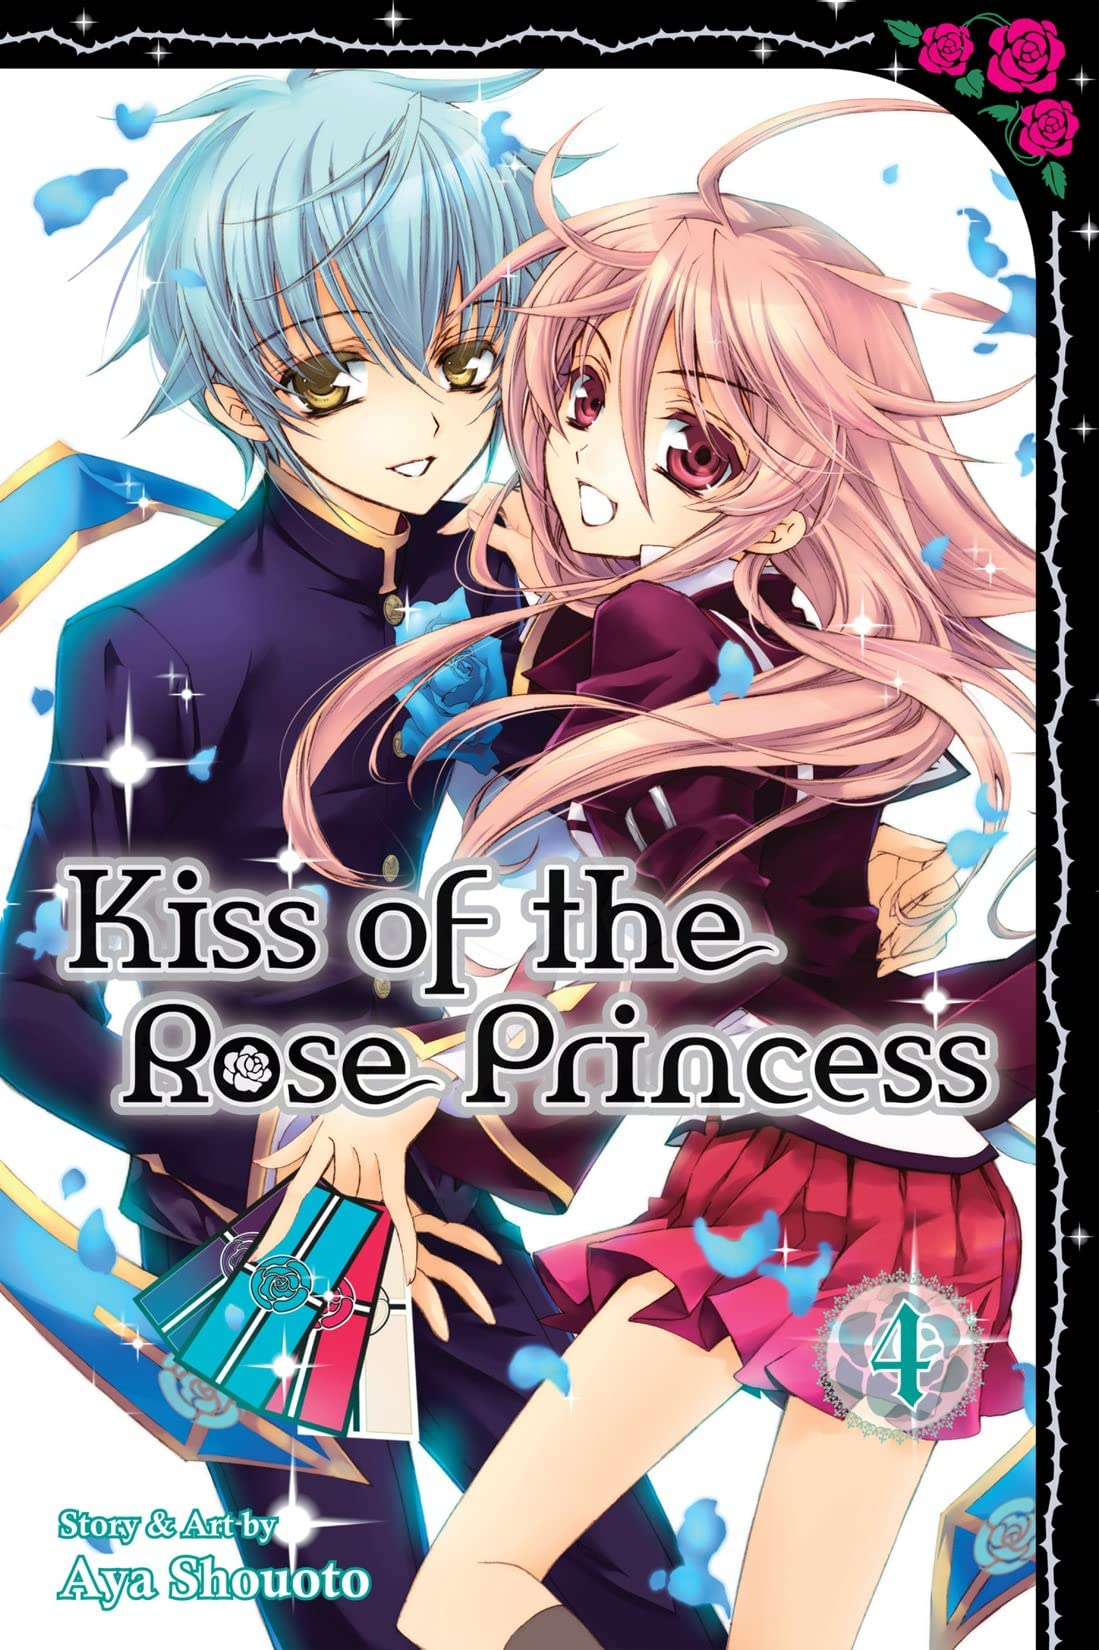 Kiss of the Rose Princess Vol. 4